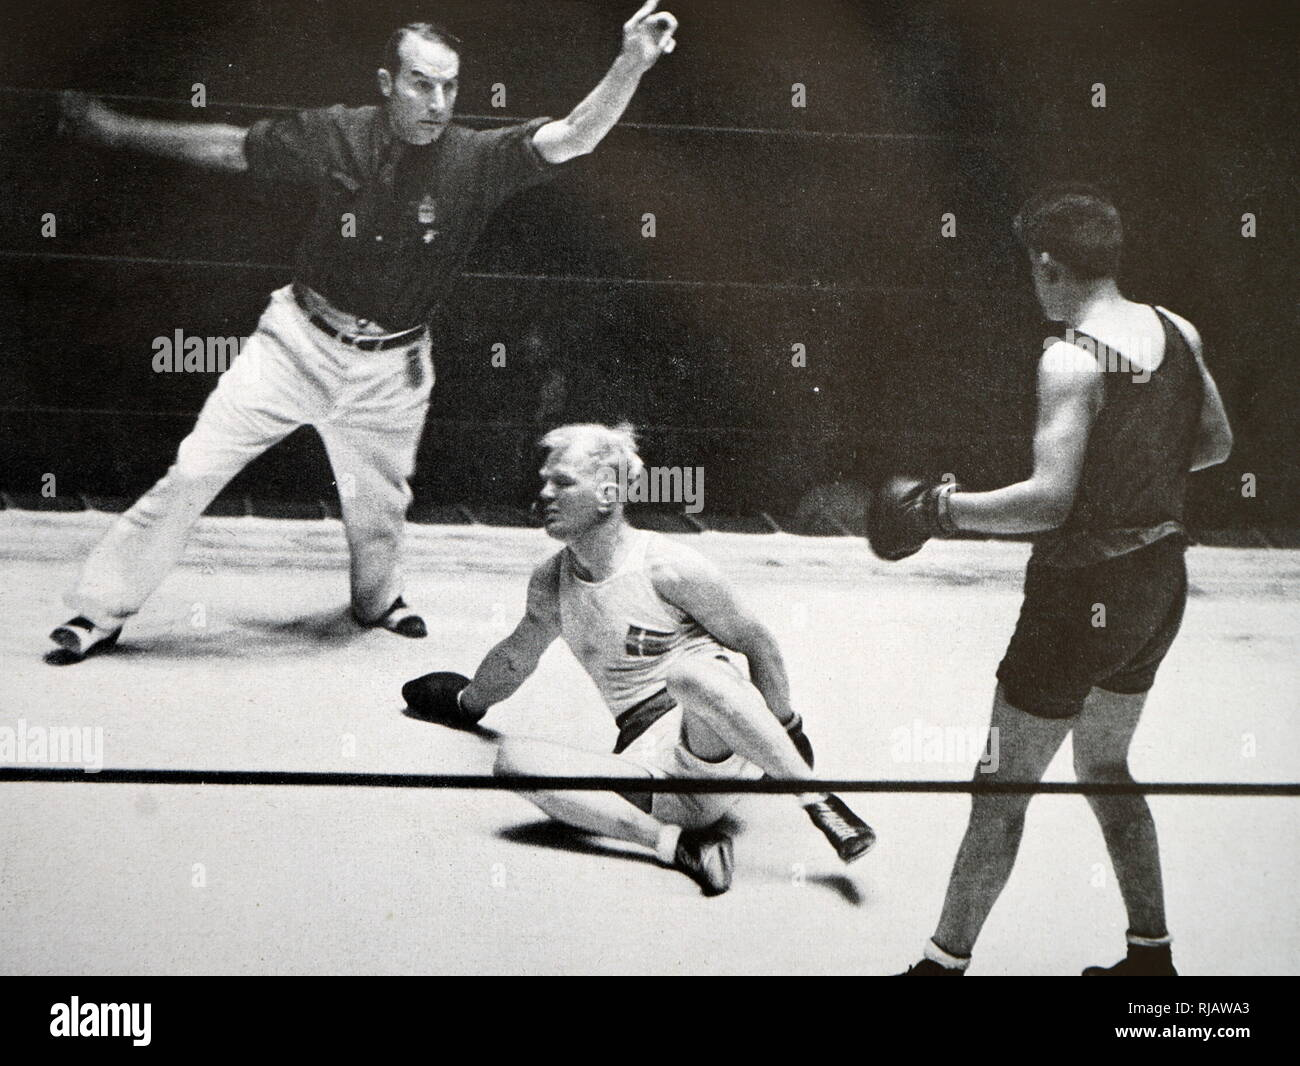 Photograph of David Daniel Carstens (1914 - 1955) from South Africa fighting Peter Oscar Jørgensen (1907 - 1992) from Denmark at the 1932 Olympic games. David Daniel Carstens takes gold in the Light Heavyweight division. Stock Photo